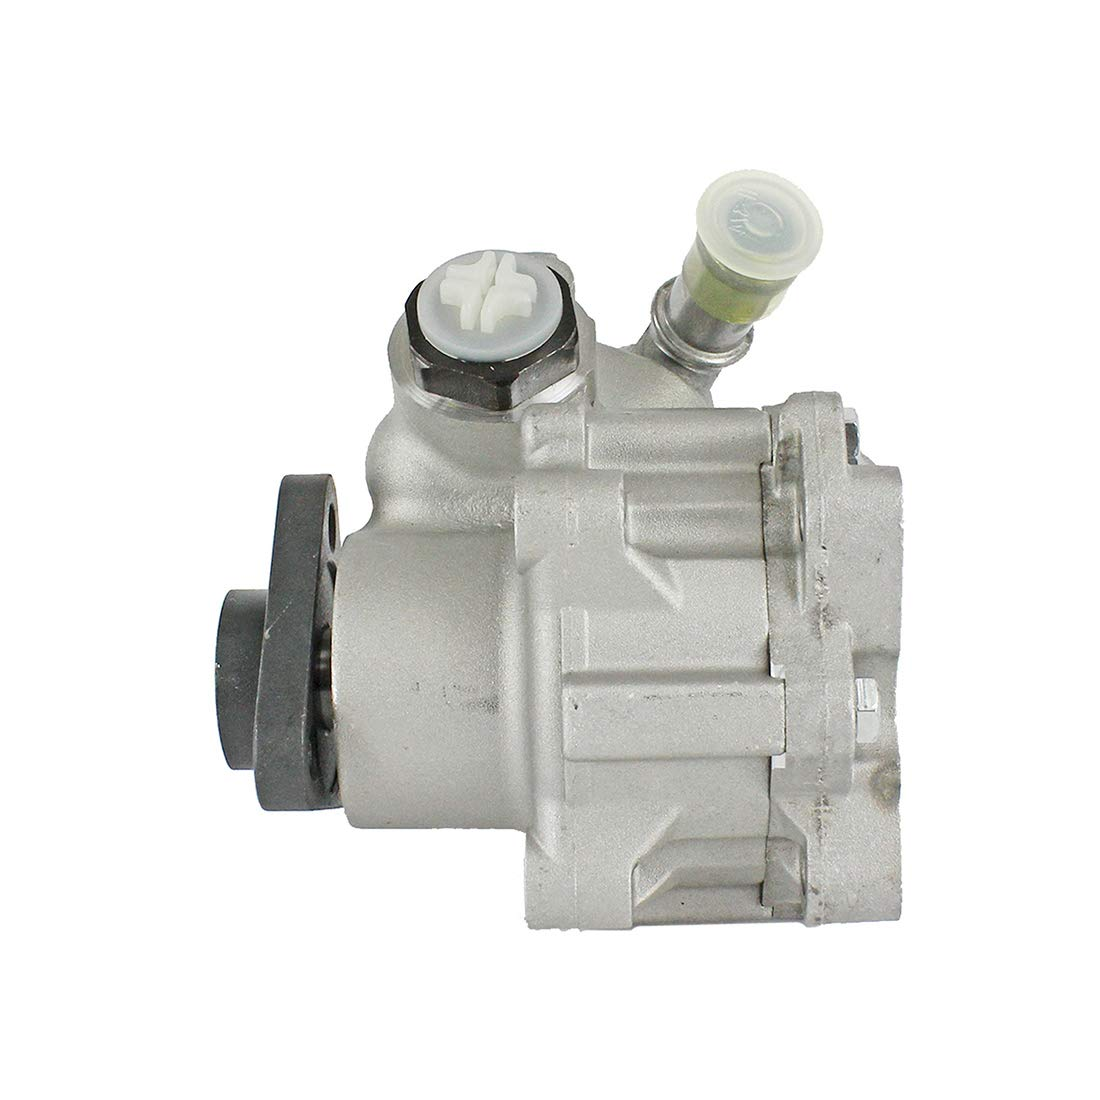 No Core Needed Brand new DNJ Power Steering Pump PSP1252 for 98-05//Volkswagen Passat Audi A4 A4 Quattro